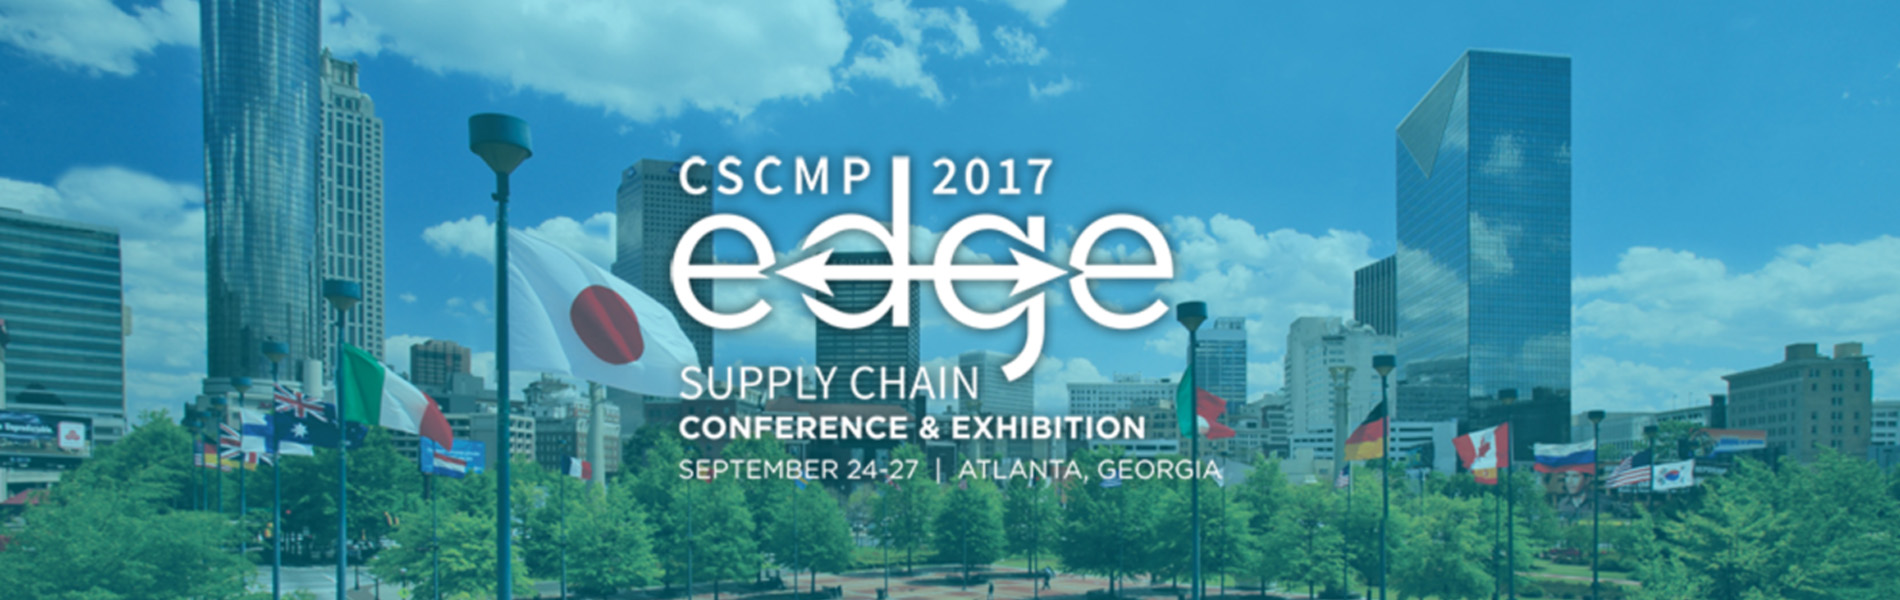 CSCMP's 2017 EDGE Supply Chain Conference